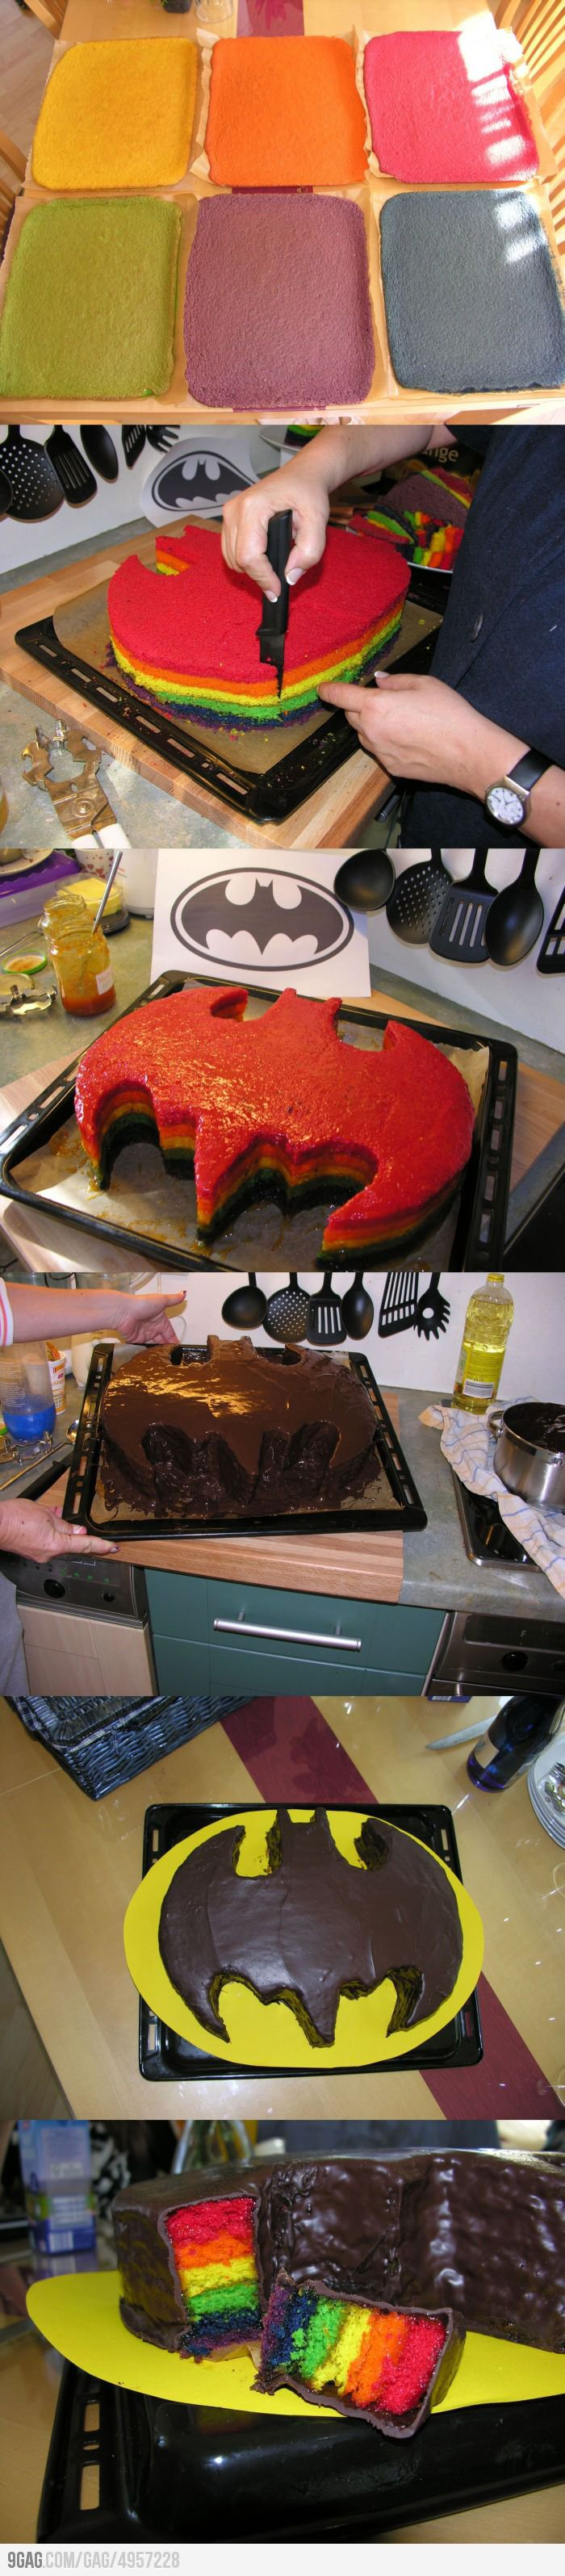 Rainbow-Colored-Batman-Cake! Could do this with any shape!... Such as a square. Or the shape of my baking pan...